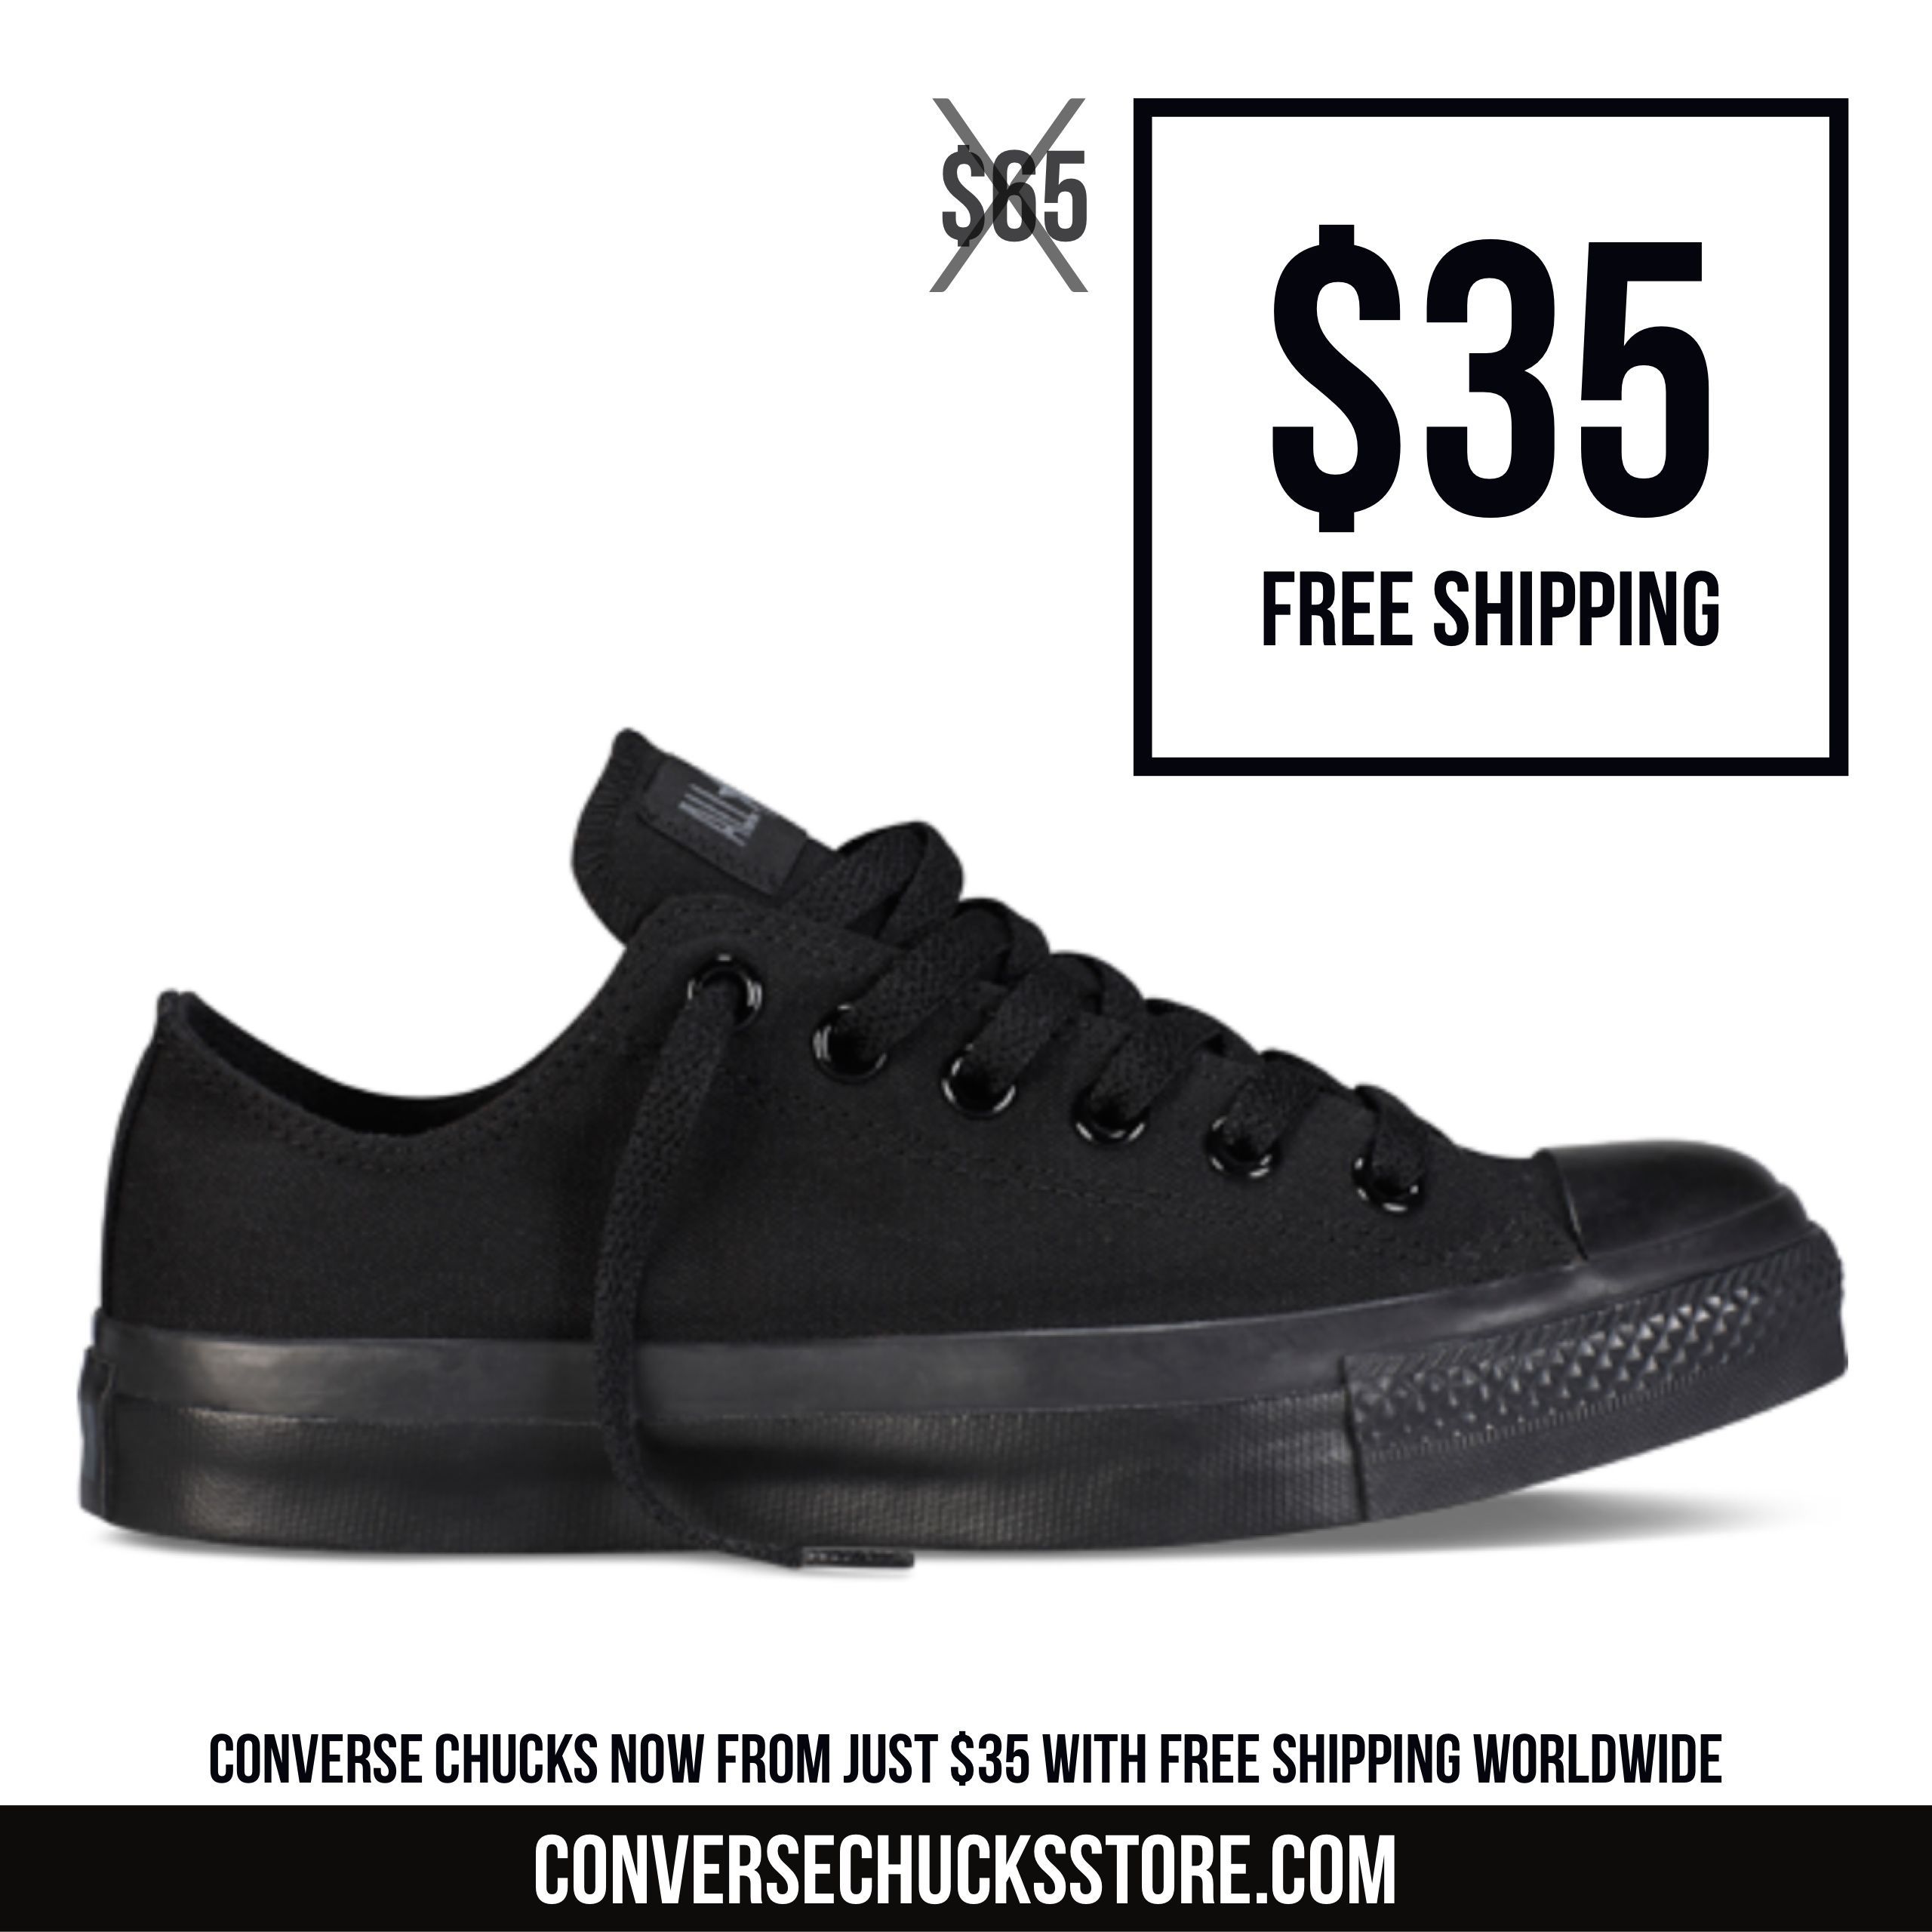 94653c7a14de Black Monochrome Lo-top Converse Chuck Taylors from  35 with free worldwide  shipping. Order